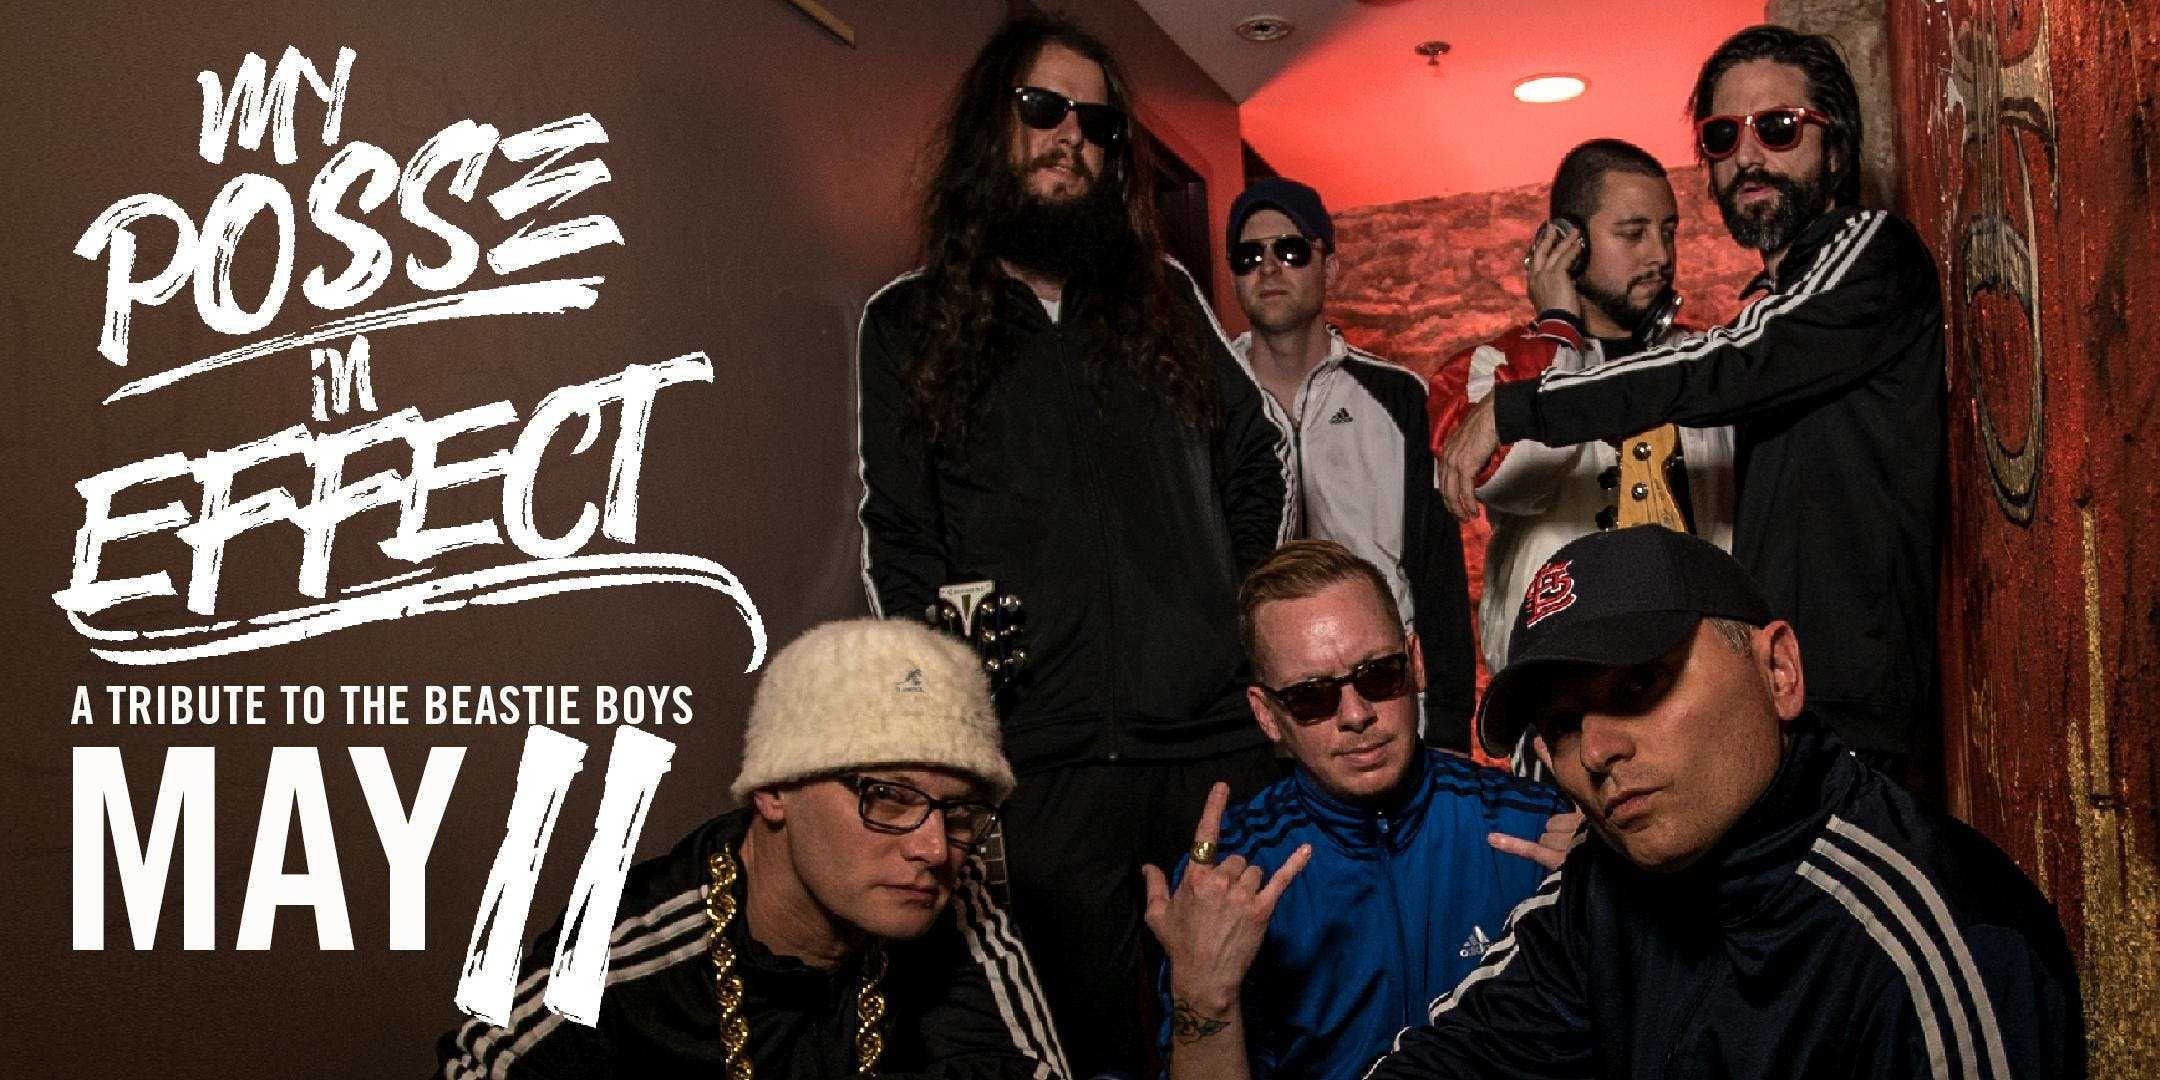 Beastie Boys Christmas.The Castle Theatre My Posse In Effect A Tribute To The